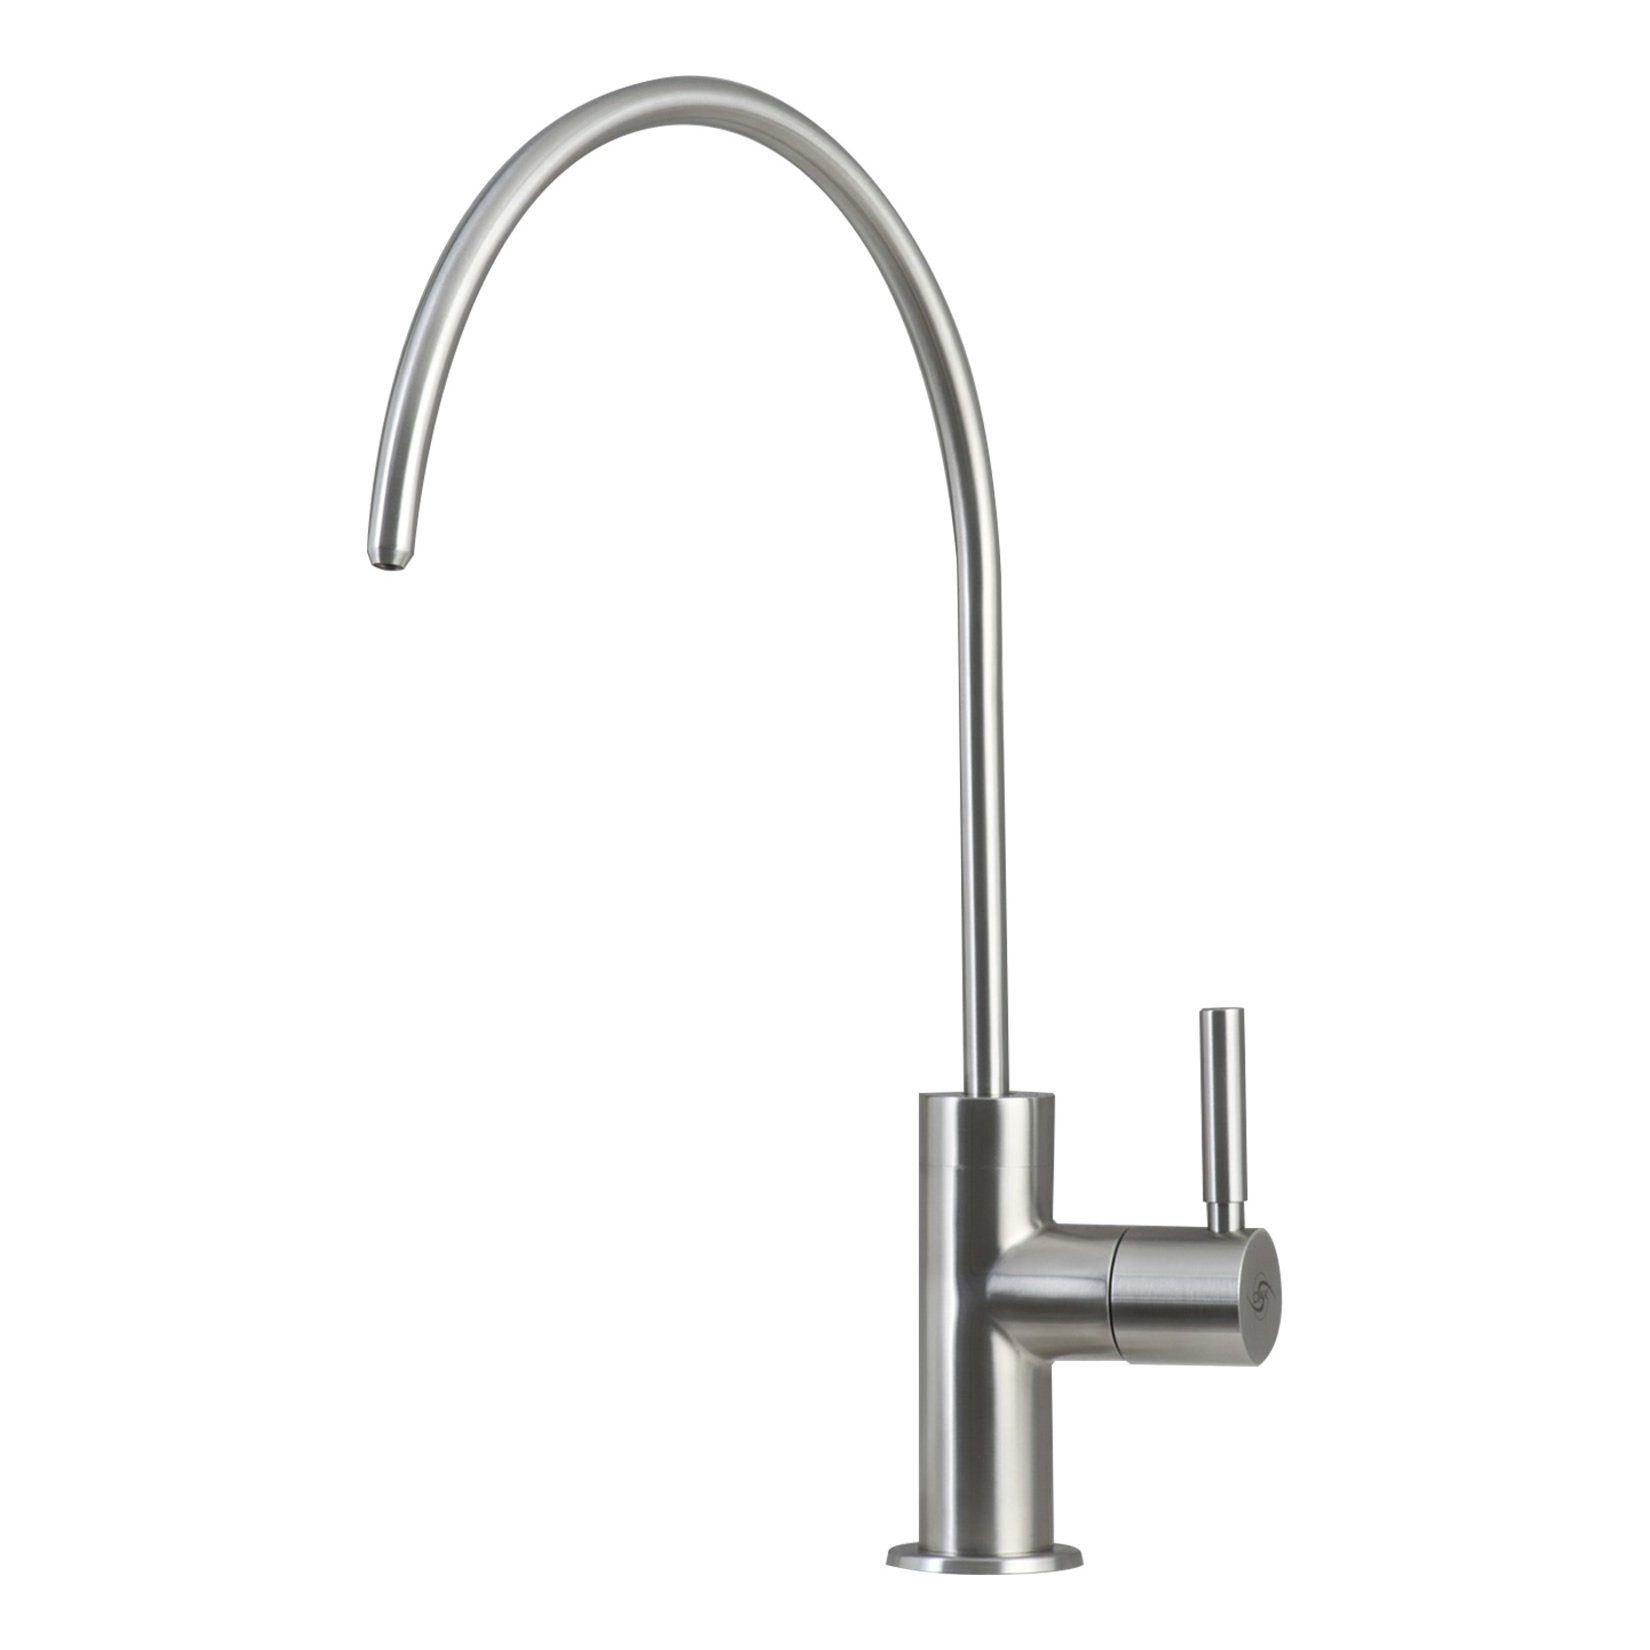 DAX Drinking Water Filter, Stainless Steel Body Faucet, Brushed Finish, DAX-PJ-01, Size 7 x 12 Inches